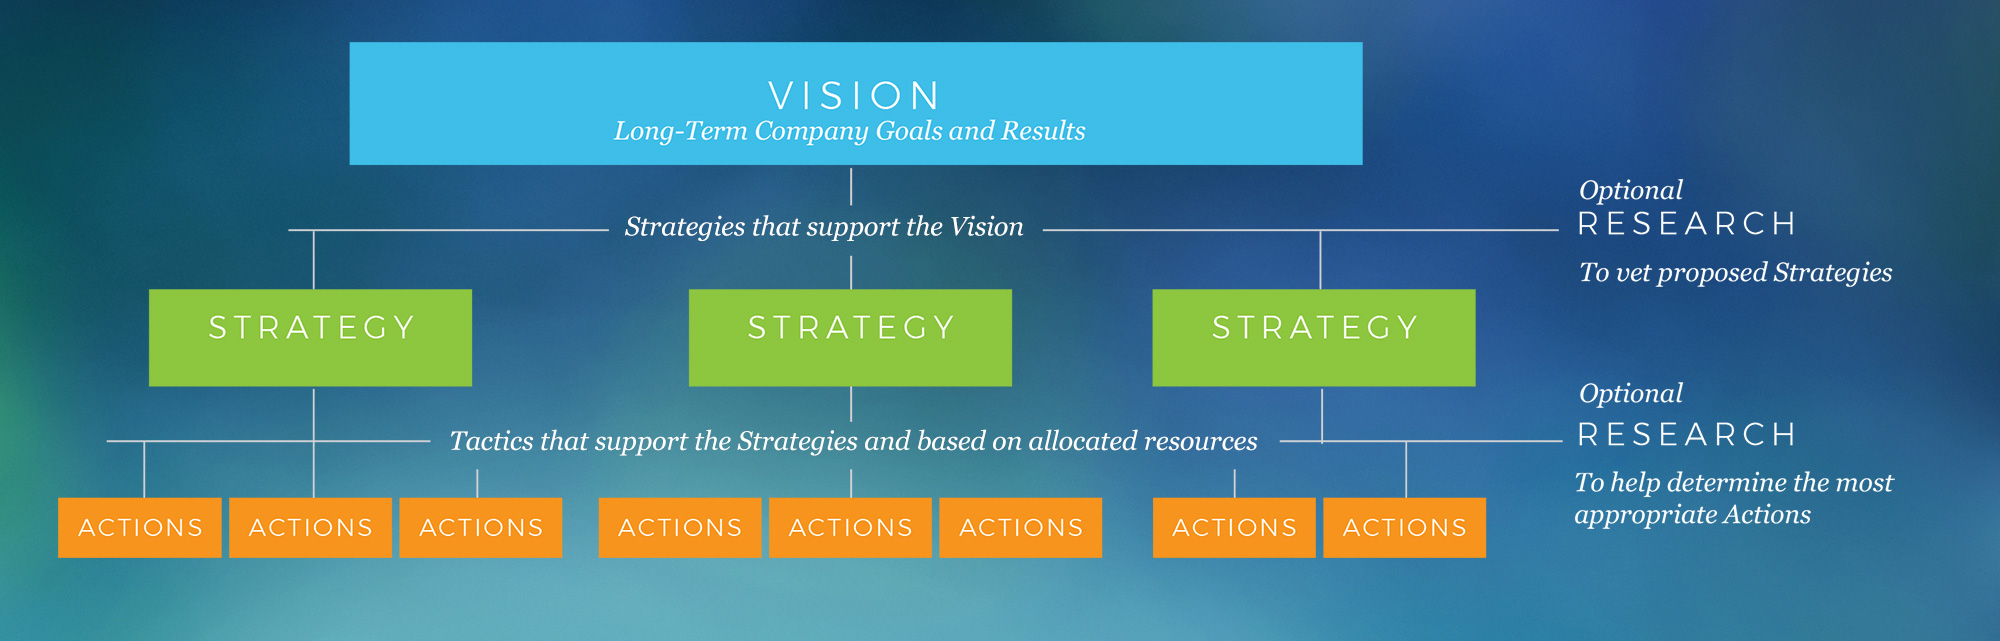 Vision-Strategy-Tactics-Blog.jpg